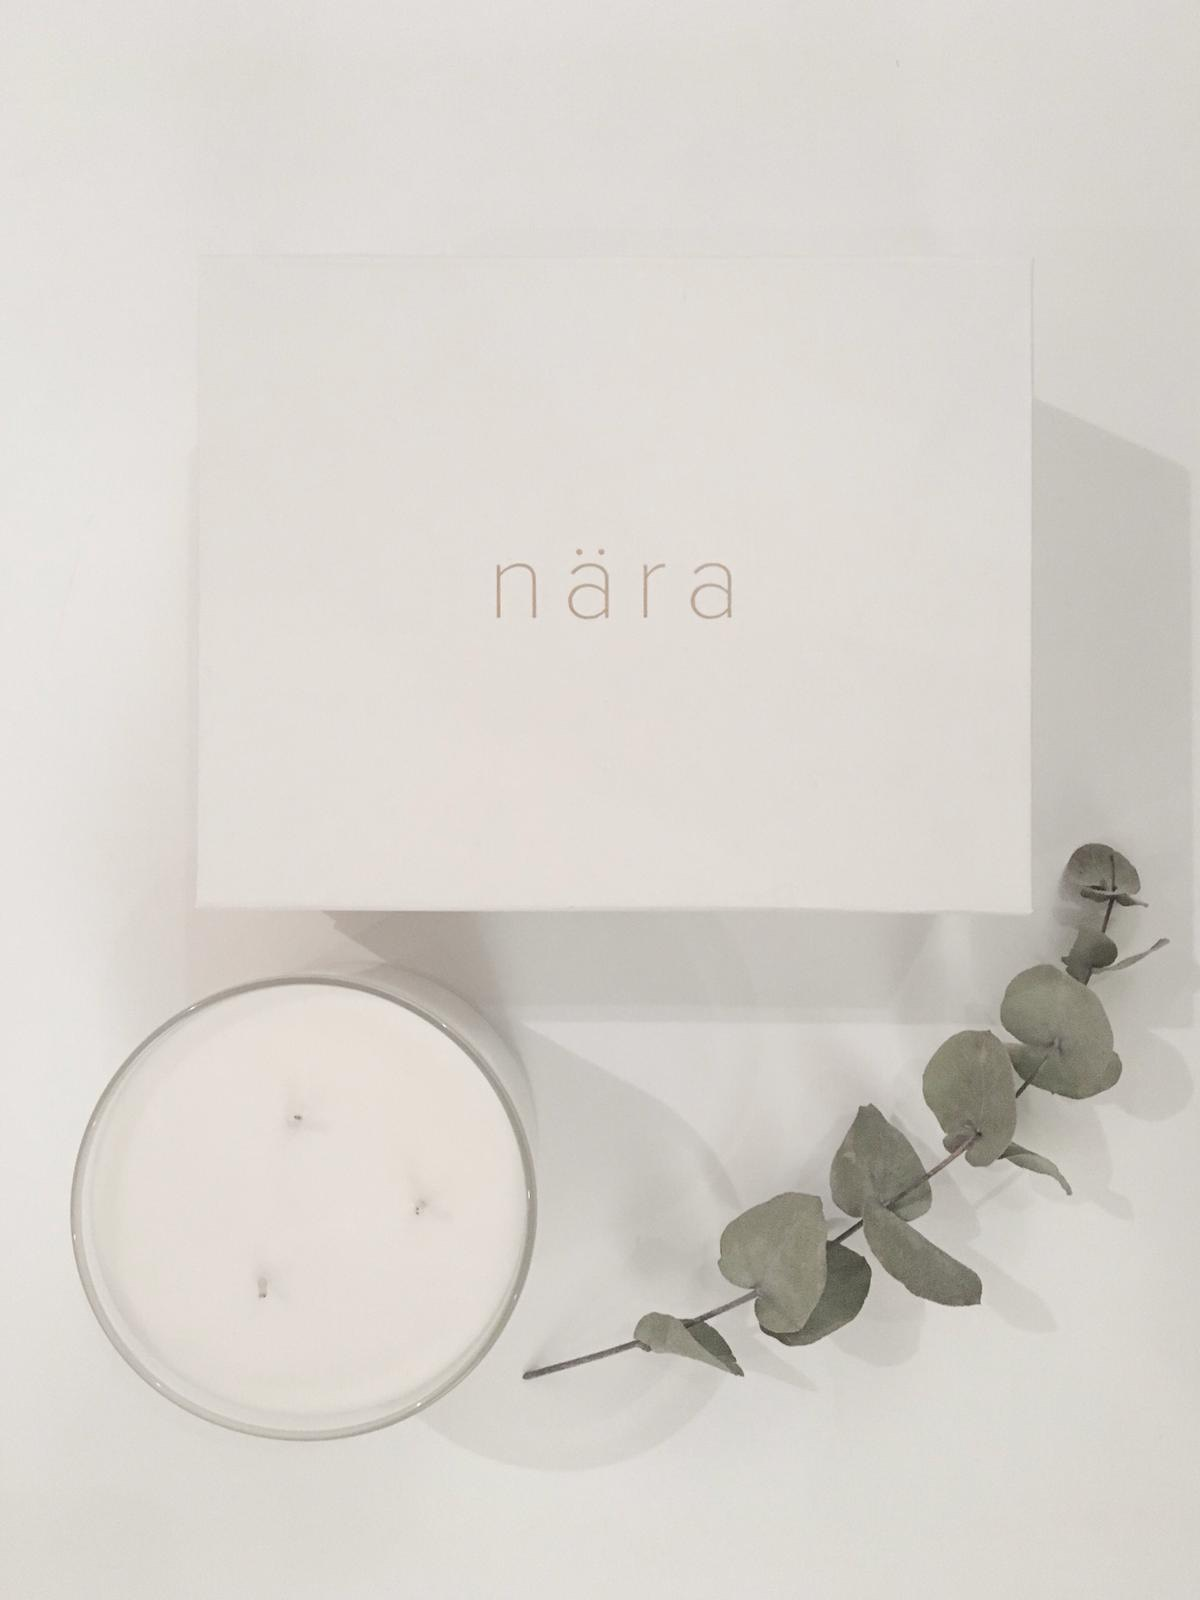 Valentine's Everyday £34.00 - This decadent gift makes sure everyday feel's like Valentines! A woody and spicy black pepper scent with the succulence of pomegranates and syrupy lemon. Black Pomegranate, is eveybody's favourite filled with sweet and sumptuous scents for the most extravagant of occasions. This three wick candle comes in a beautiful nära gift box.